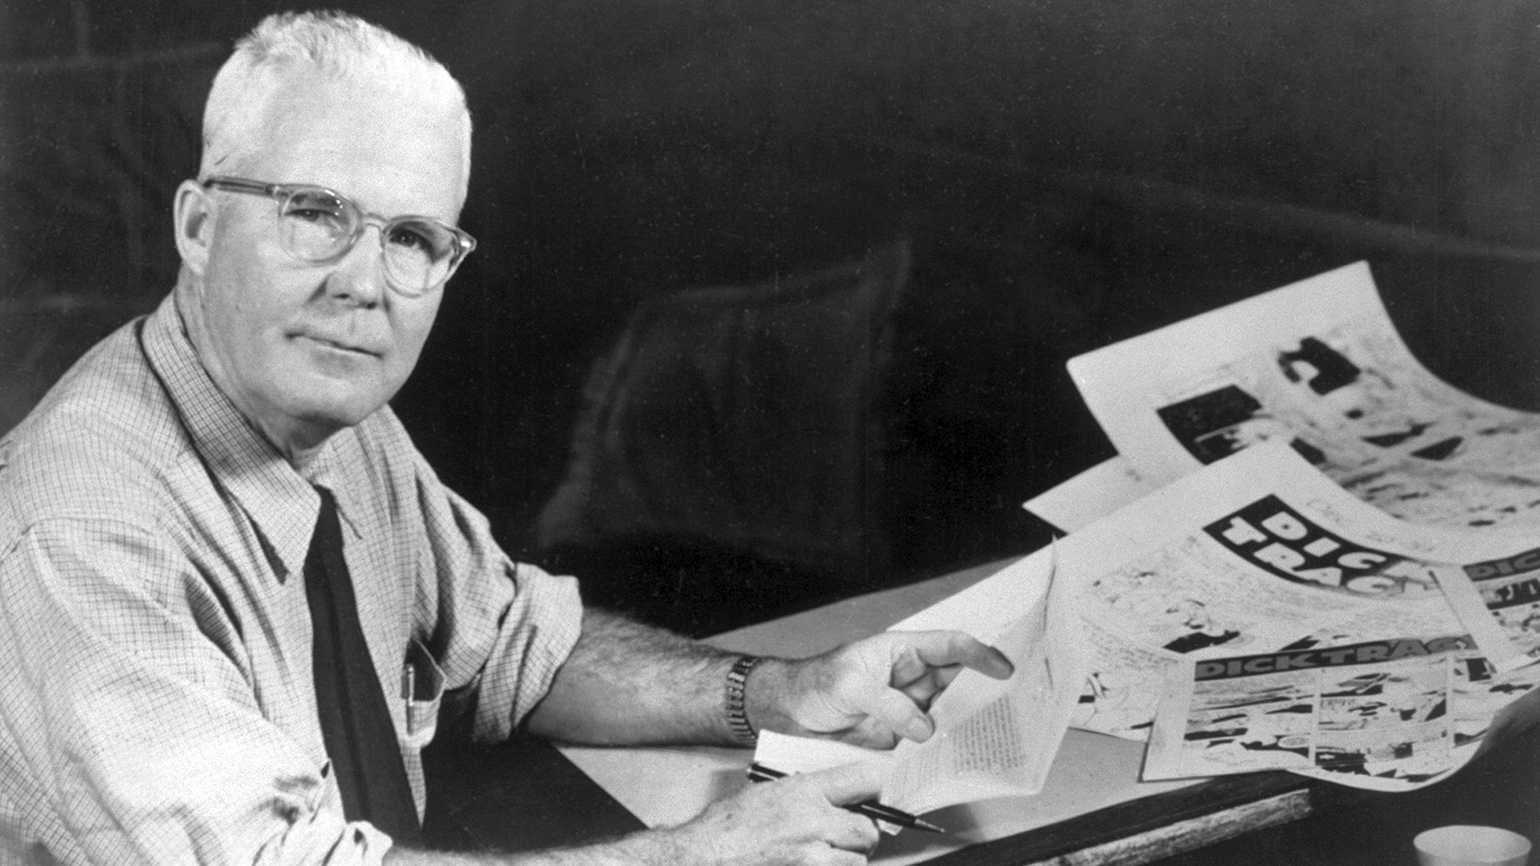 Chester Gould, creator of the comic strip Dick Tracy